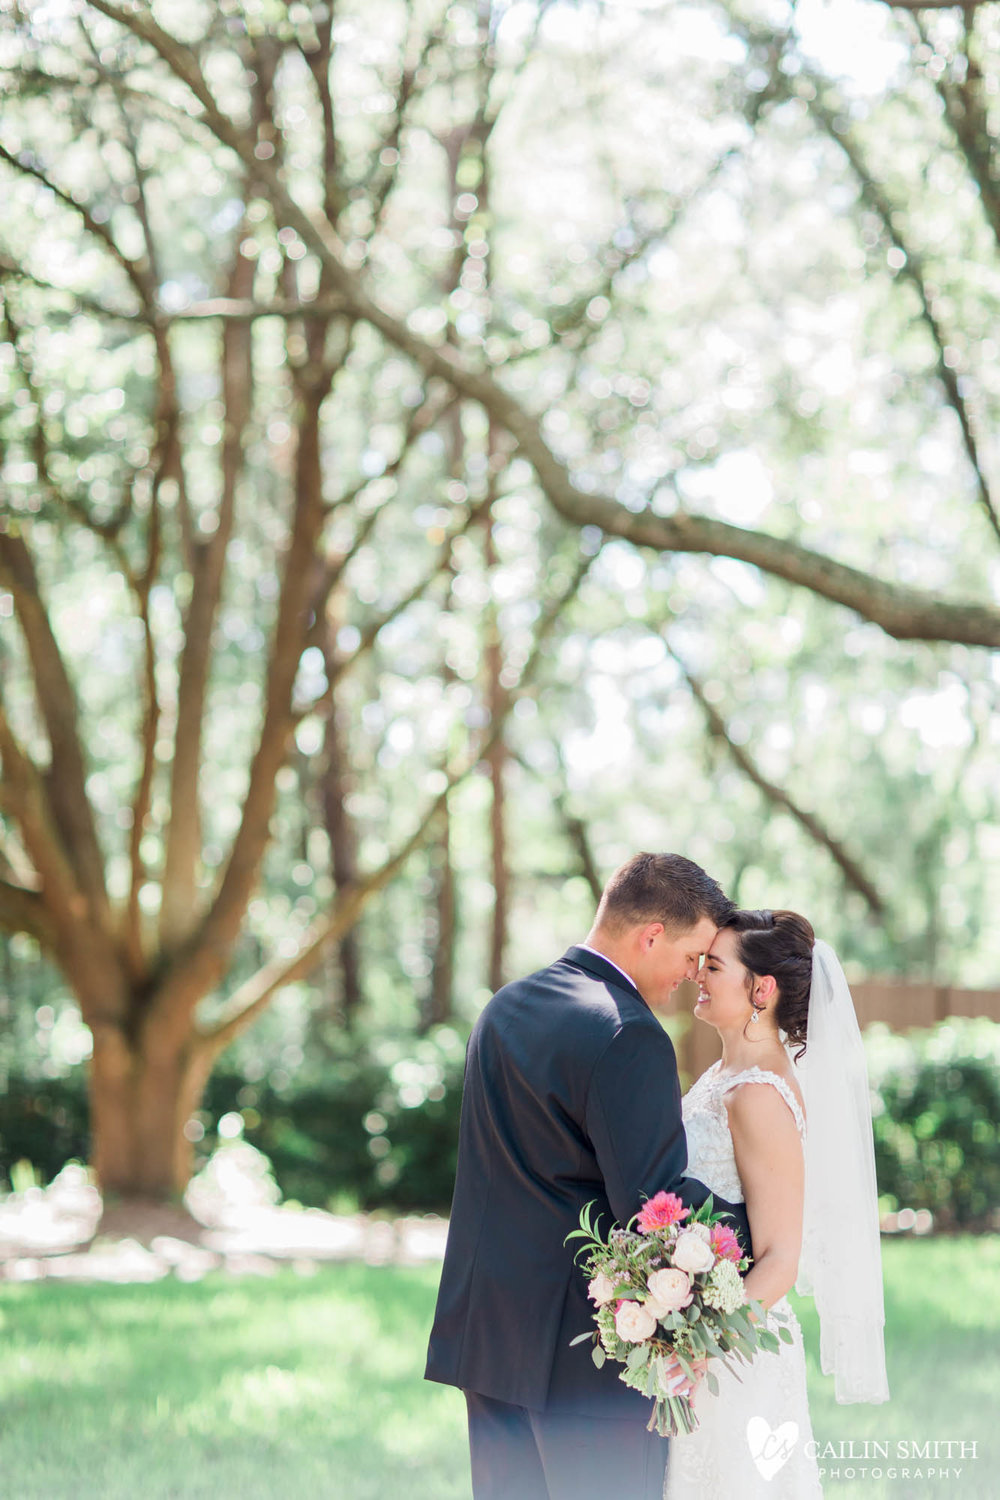 Bethany_Kyle_Bowing_Oaks_Plantation_Wedding_Photography_0049.jpg